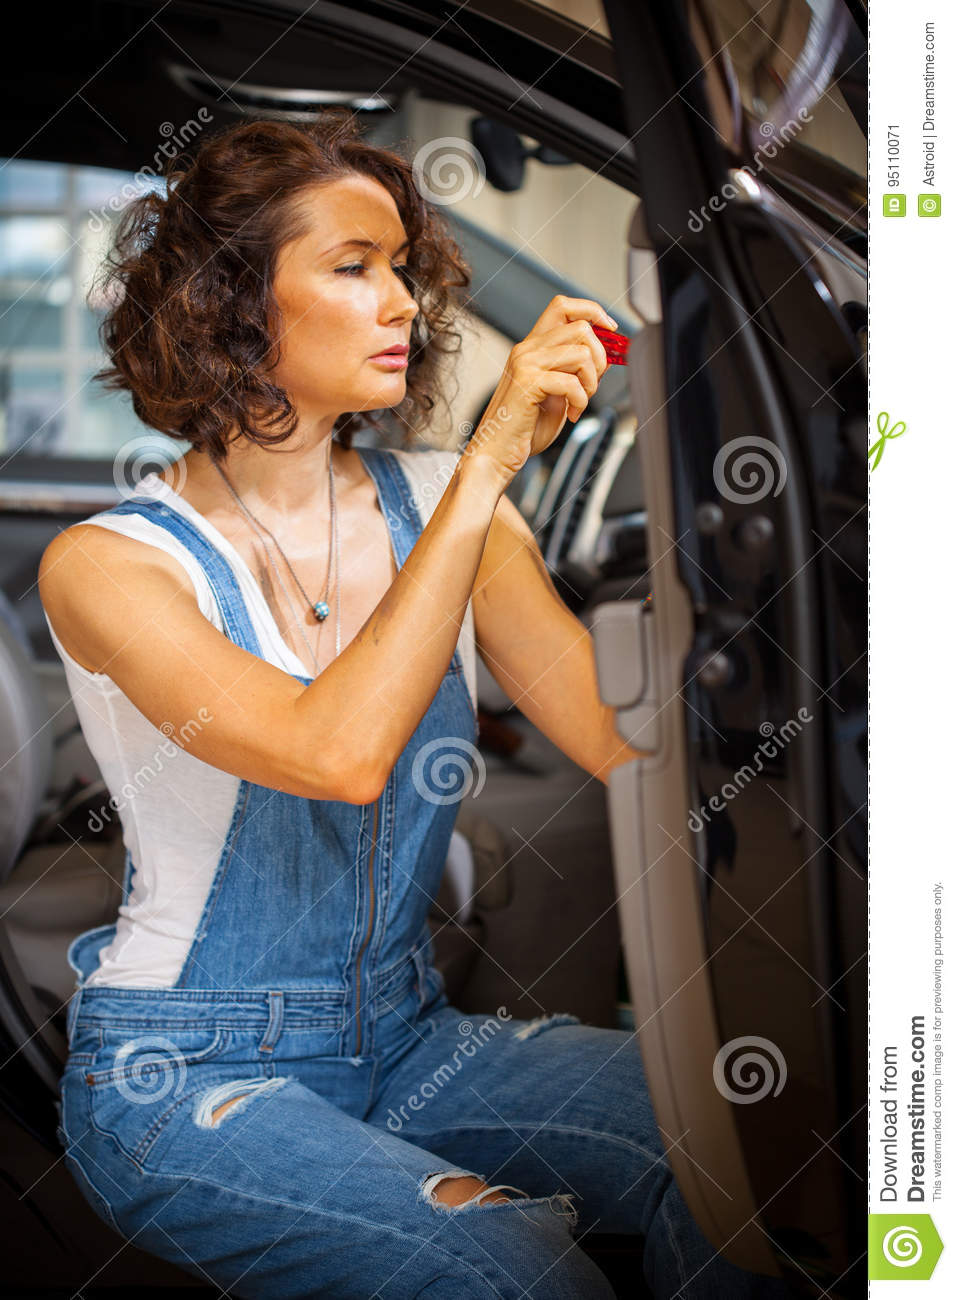 Mechanic woman in a blue overalls repair with a screwdriver the